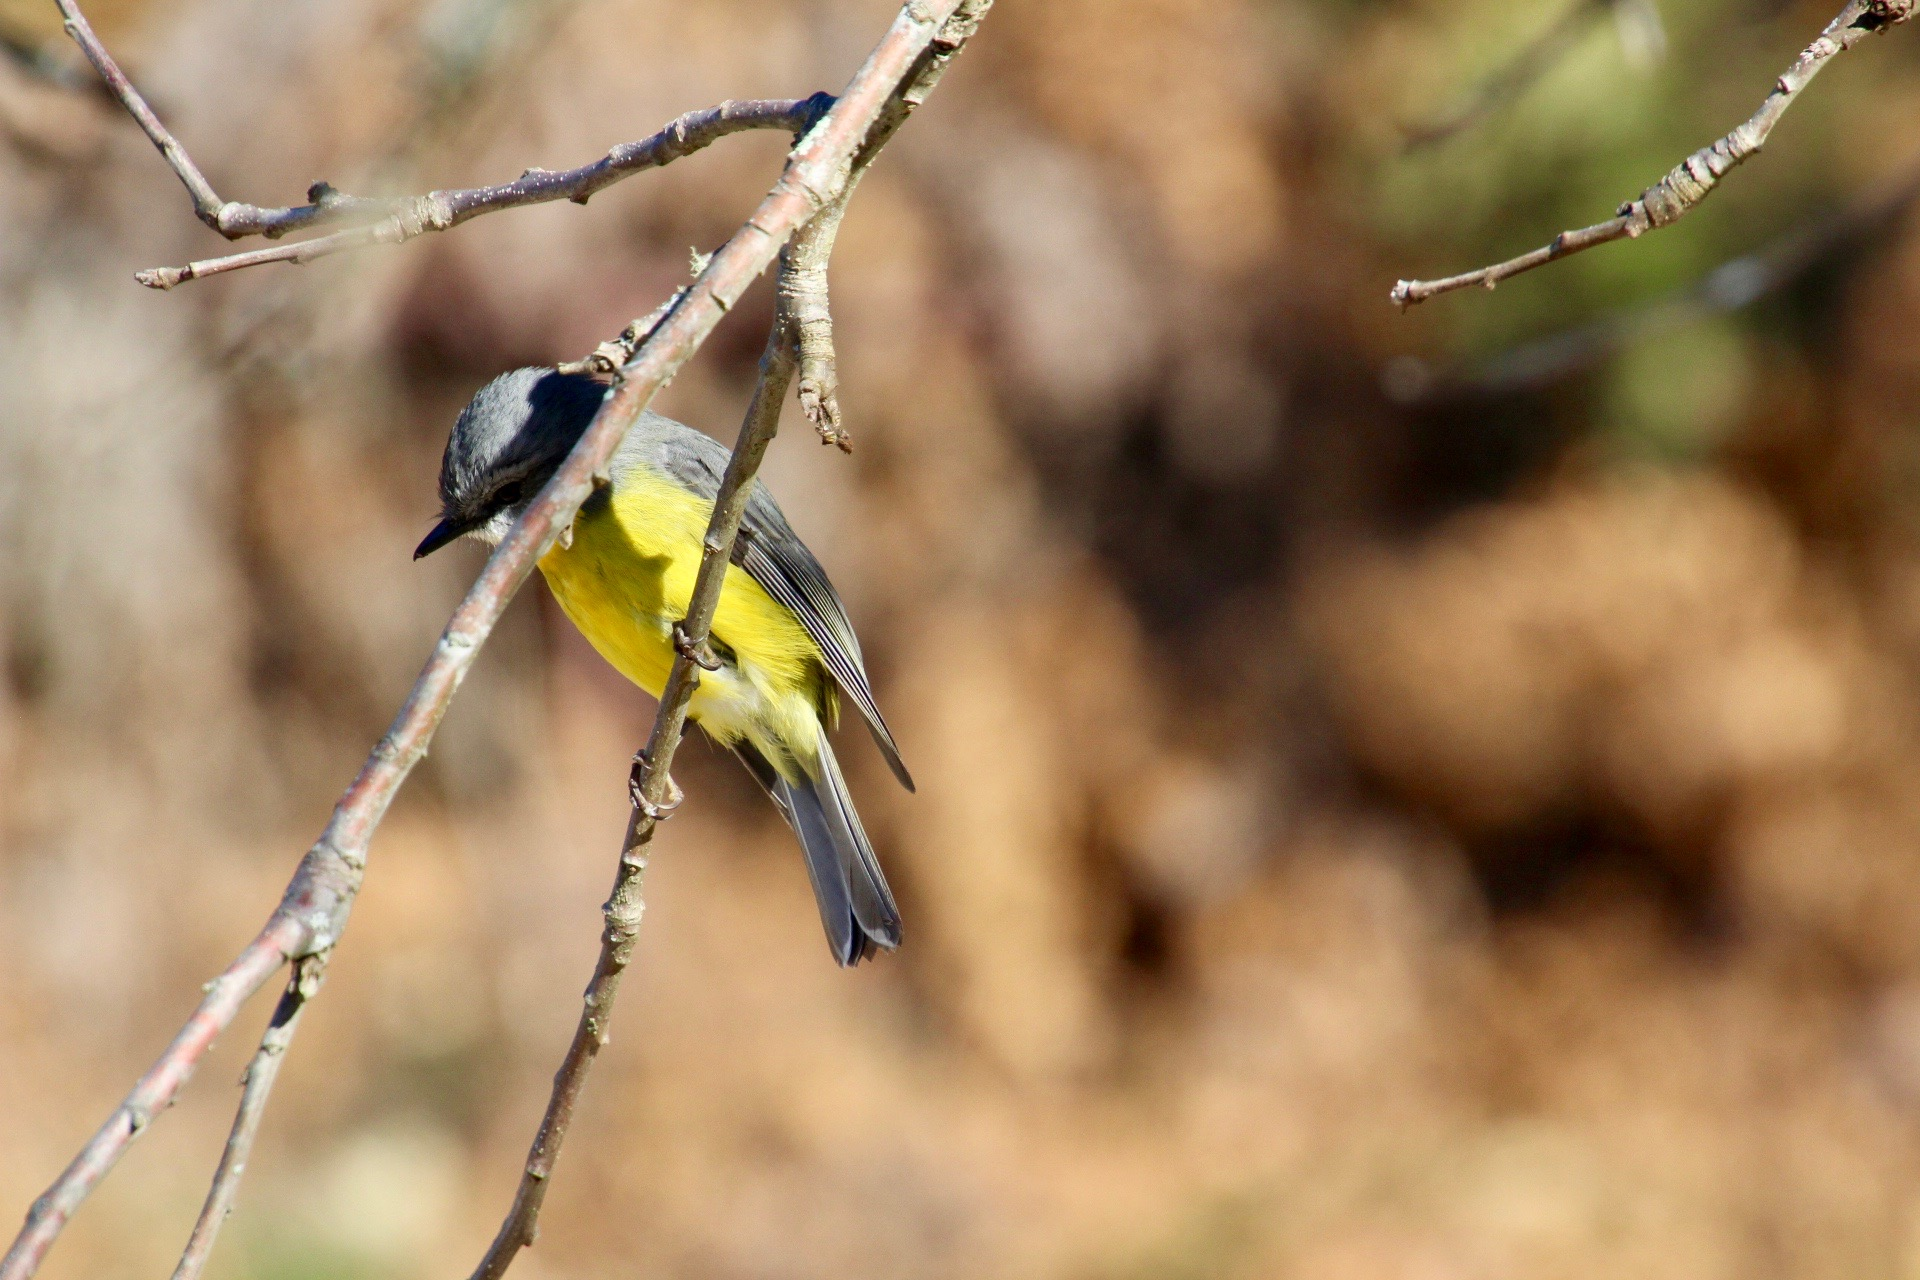 Eastern Yellow Robin (Eopsaltria griseogularis)